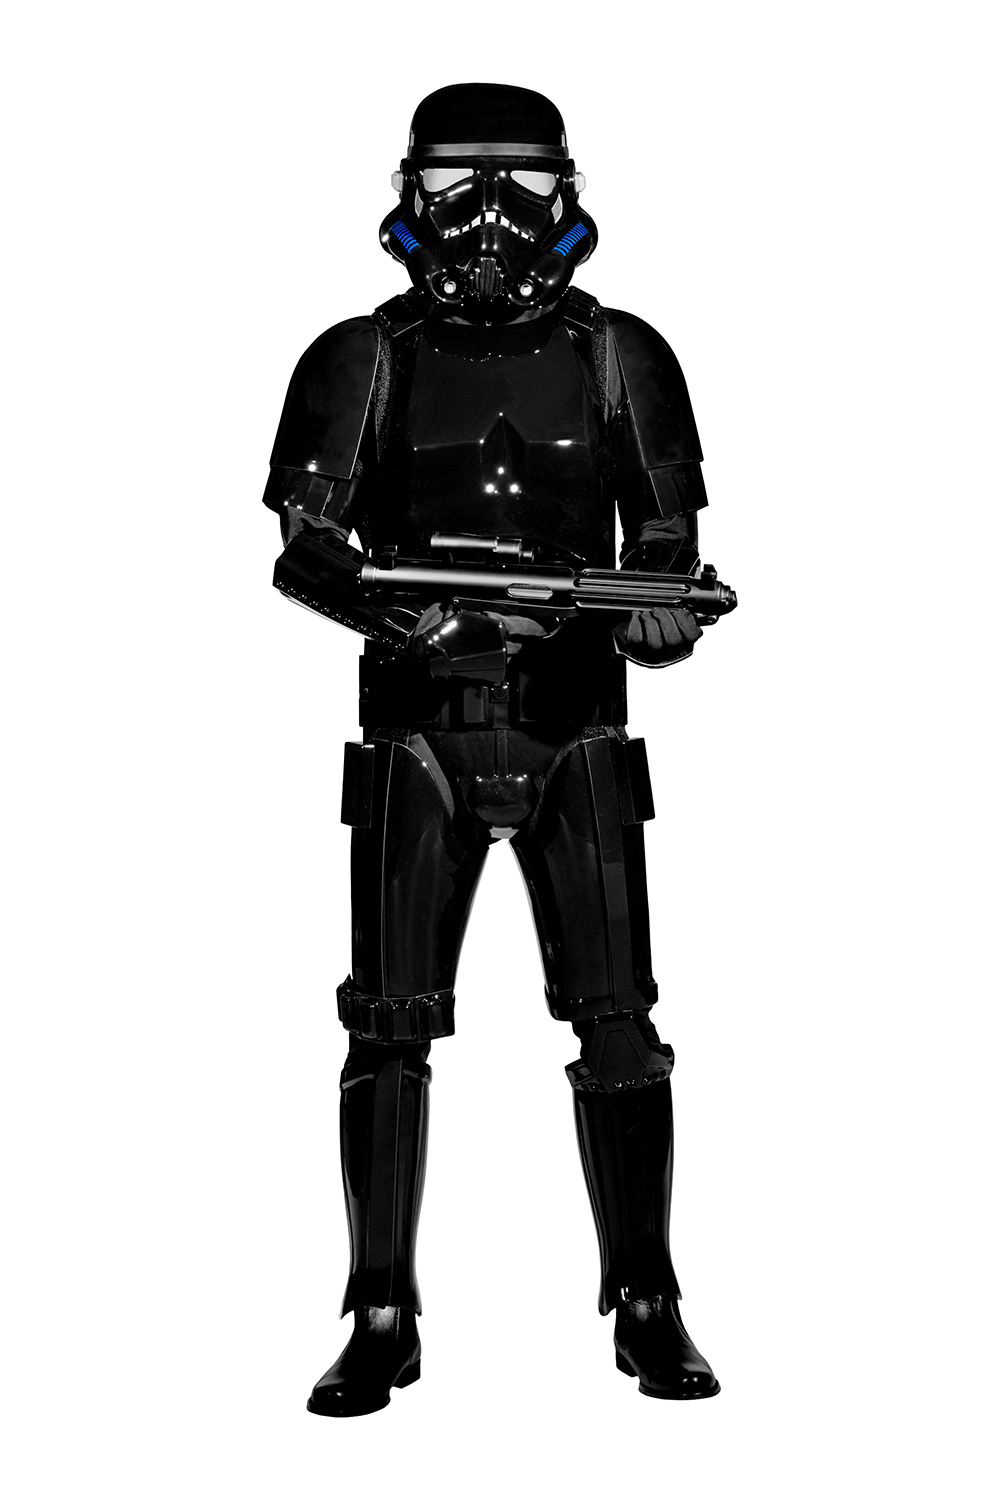 Shadowtrooper Costume Armour Packages available at www.Stormtrooper-Costumes.com - The Stormtrooper Shop